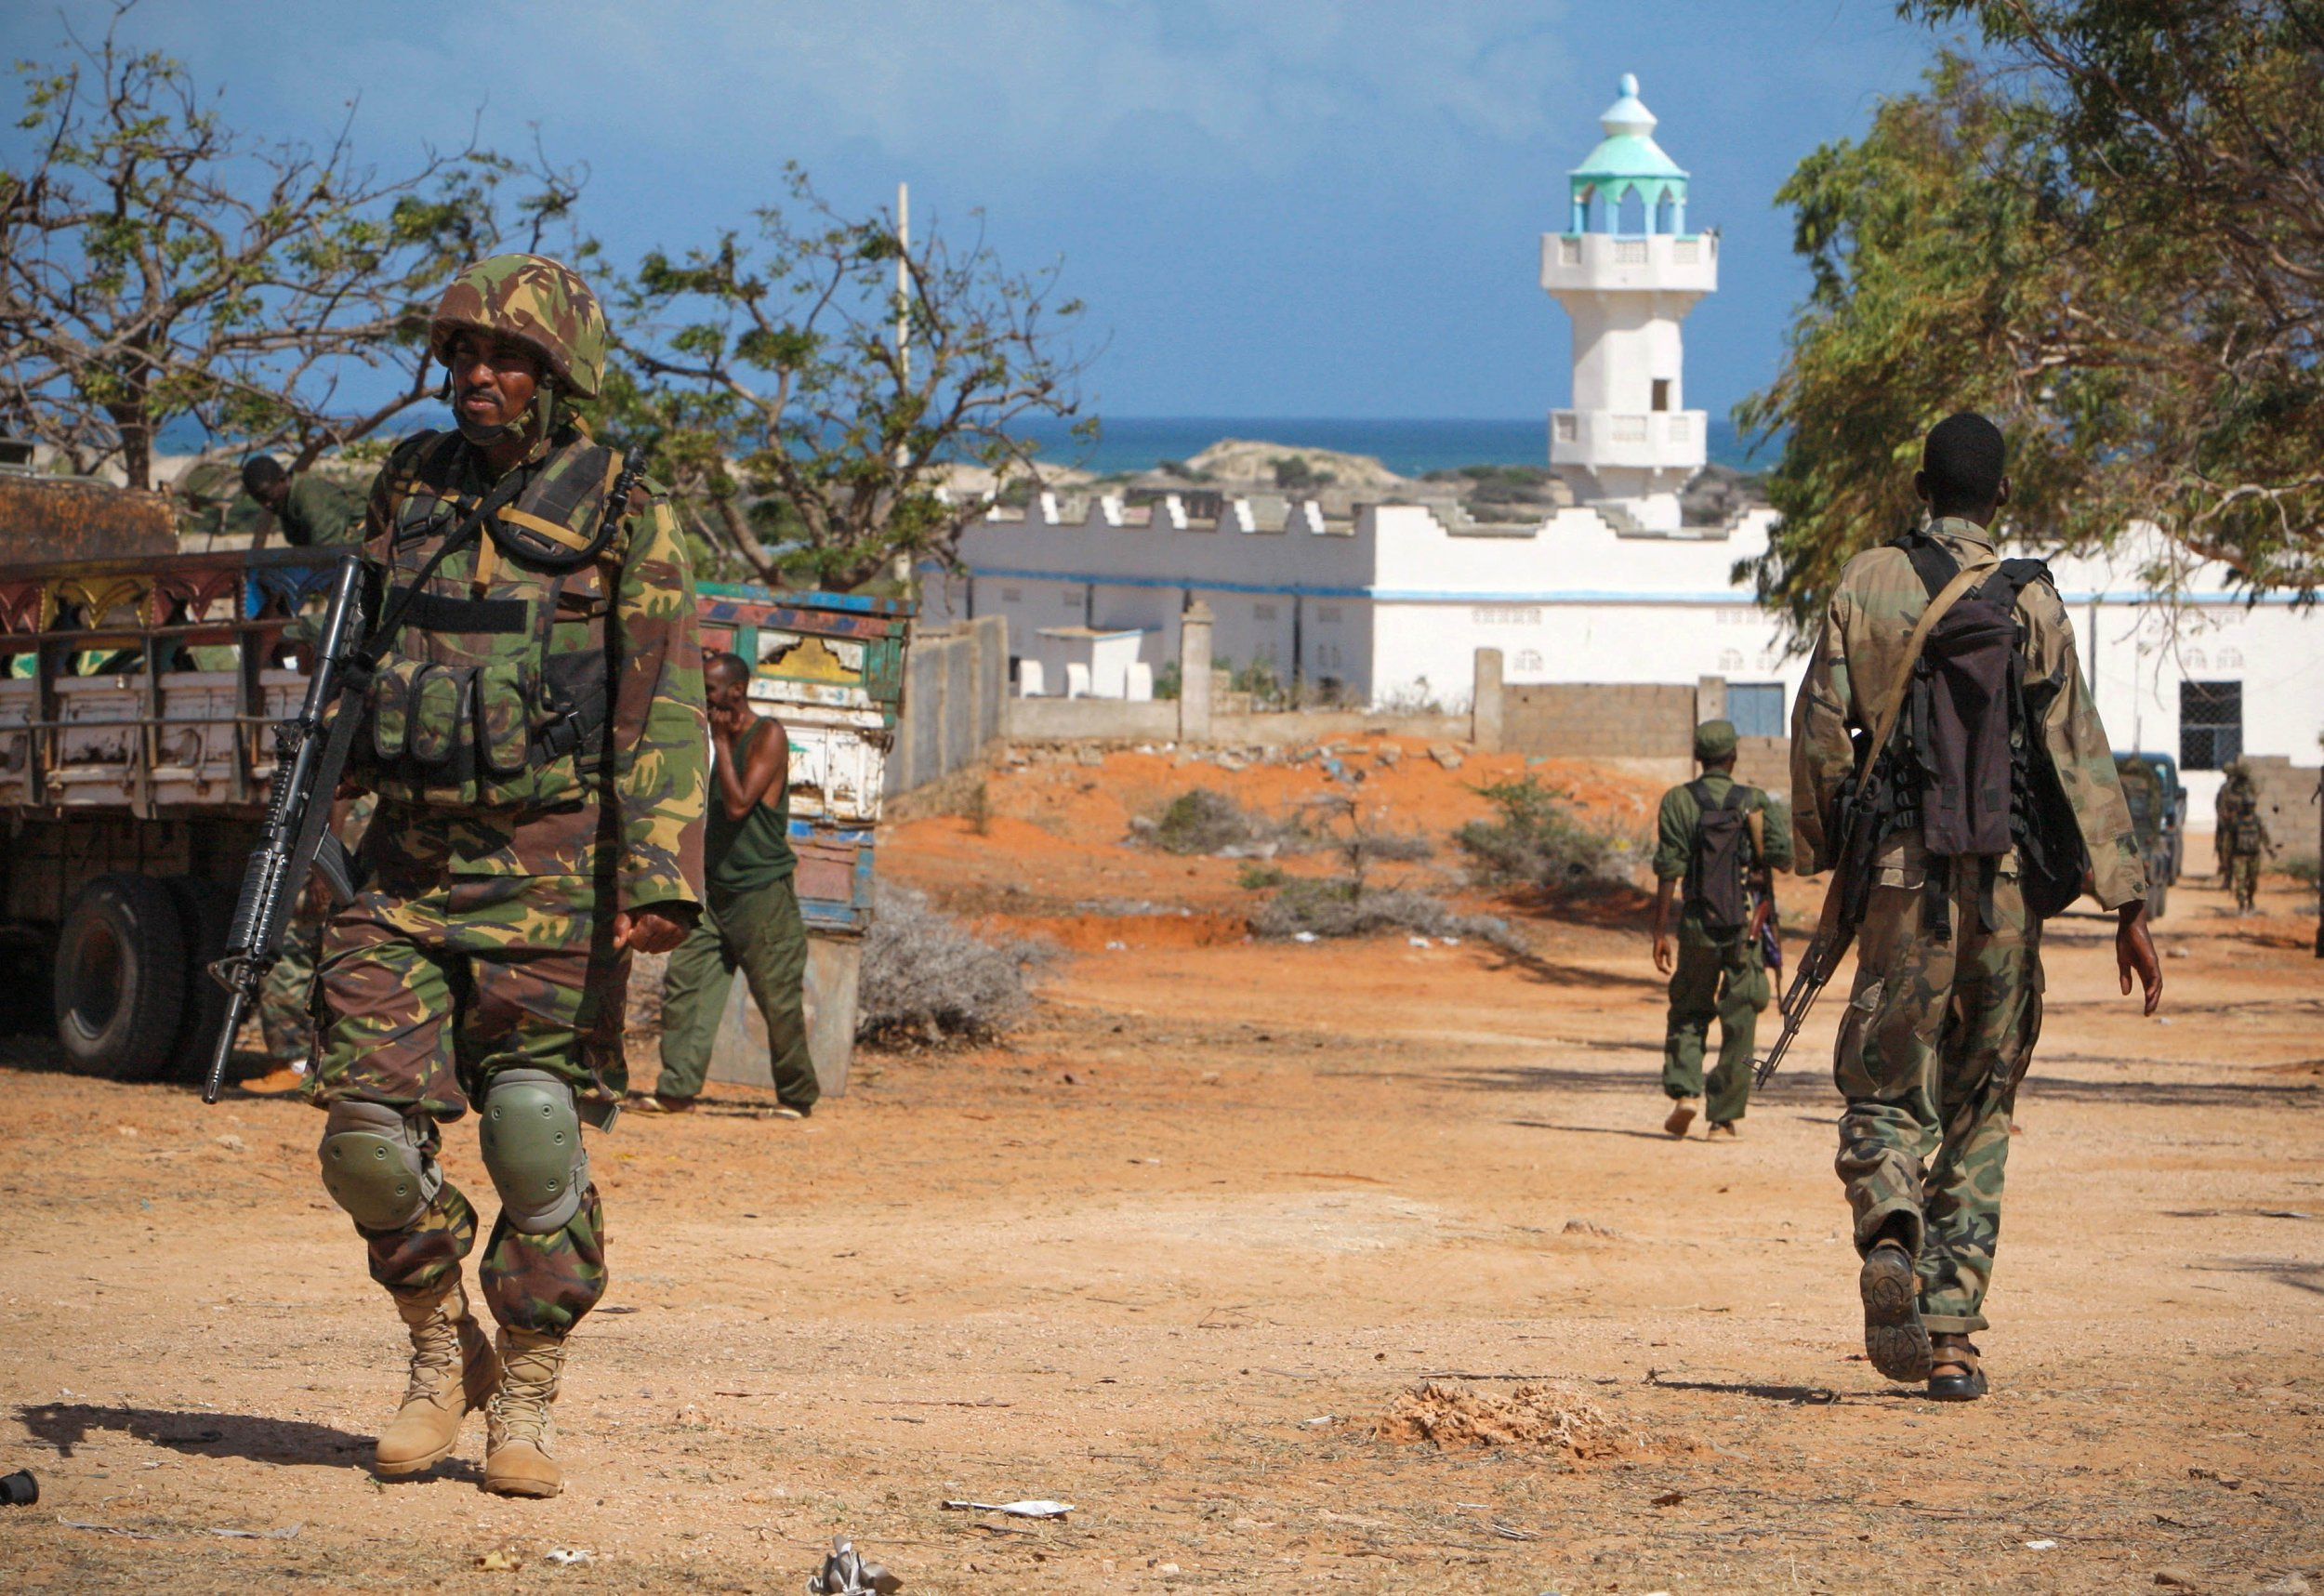 Kenya troops Somalia